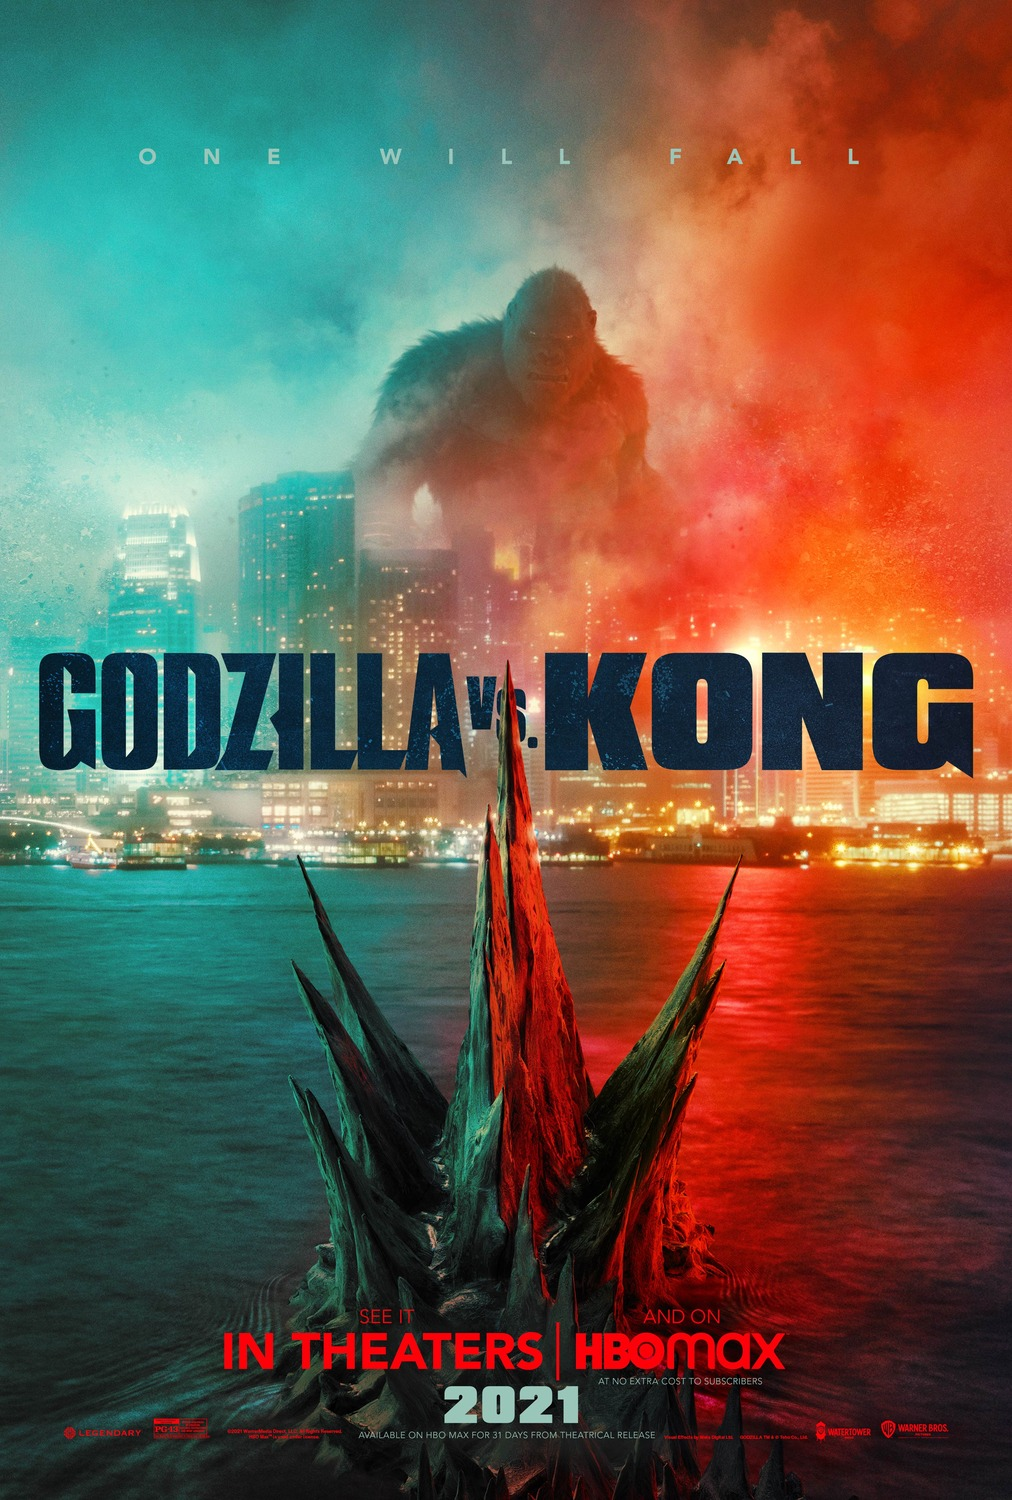 Download Filme Godzilla vs. Kong Torrent 2021 Qualidade Hd